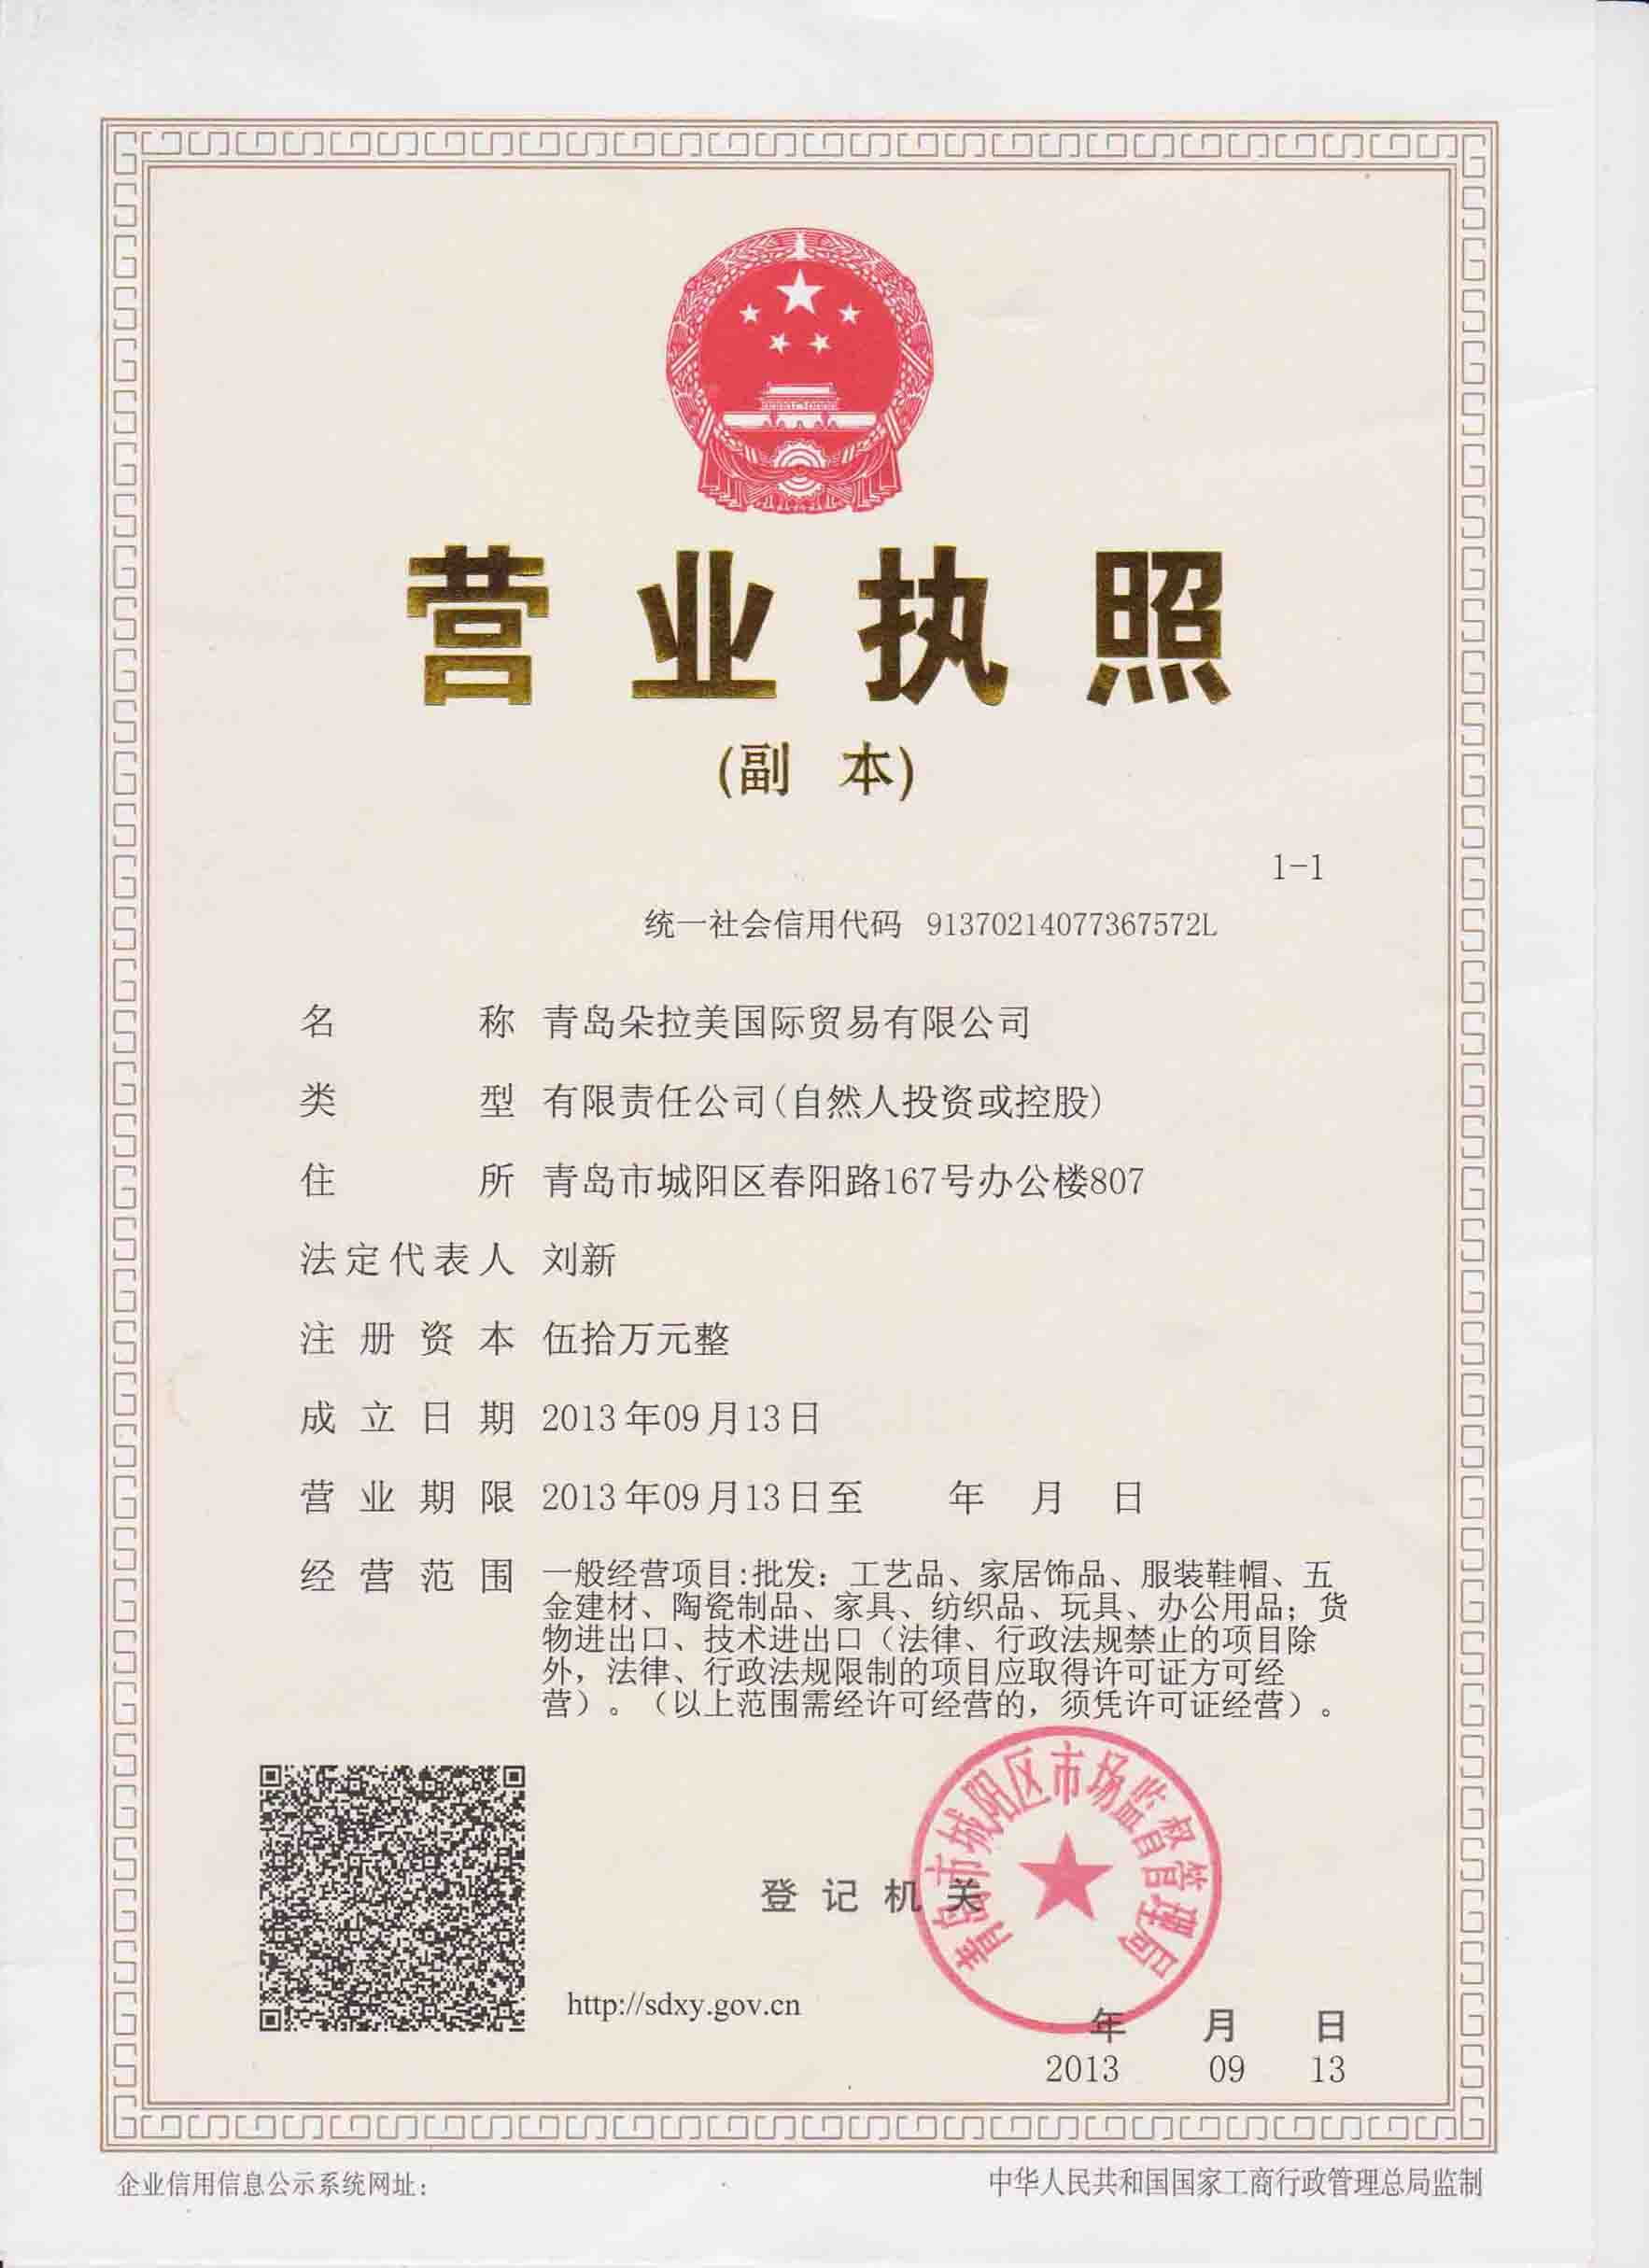 business license of the enterprice legal person